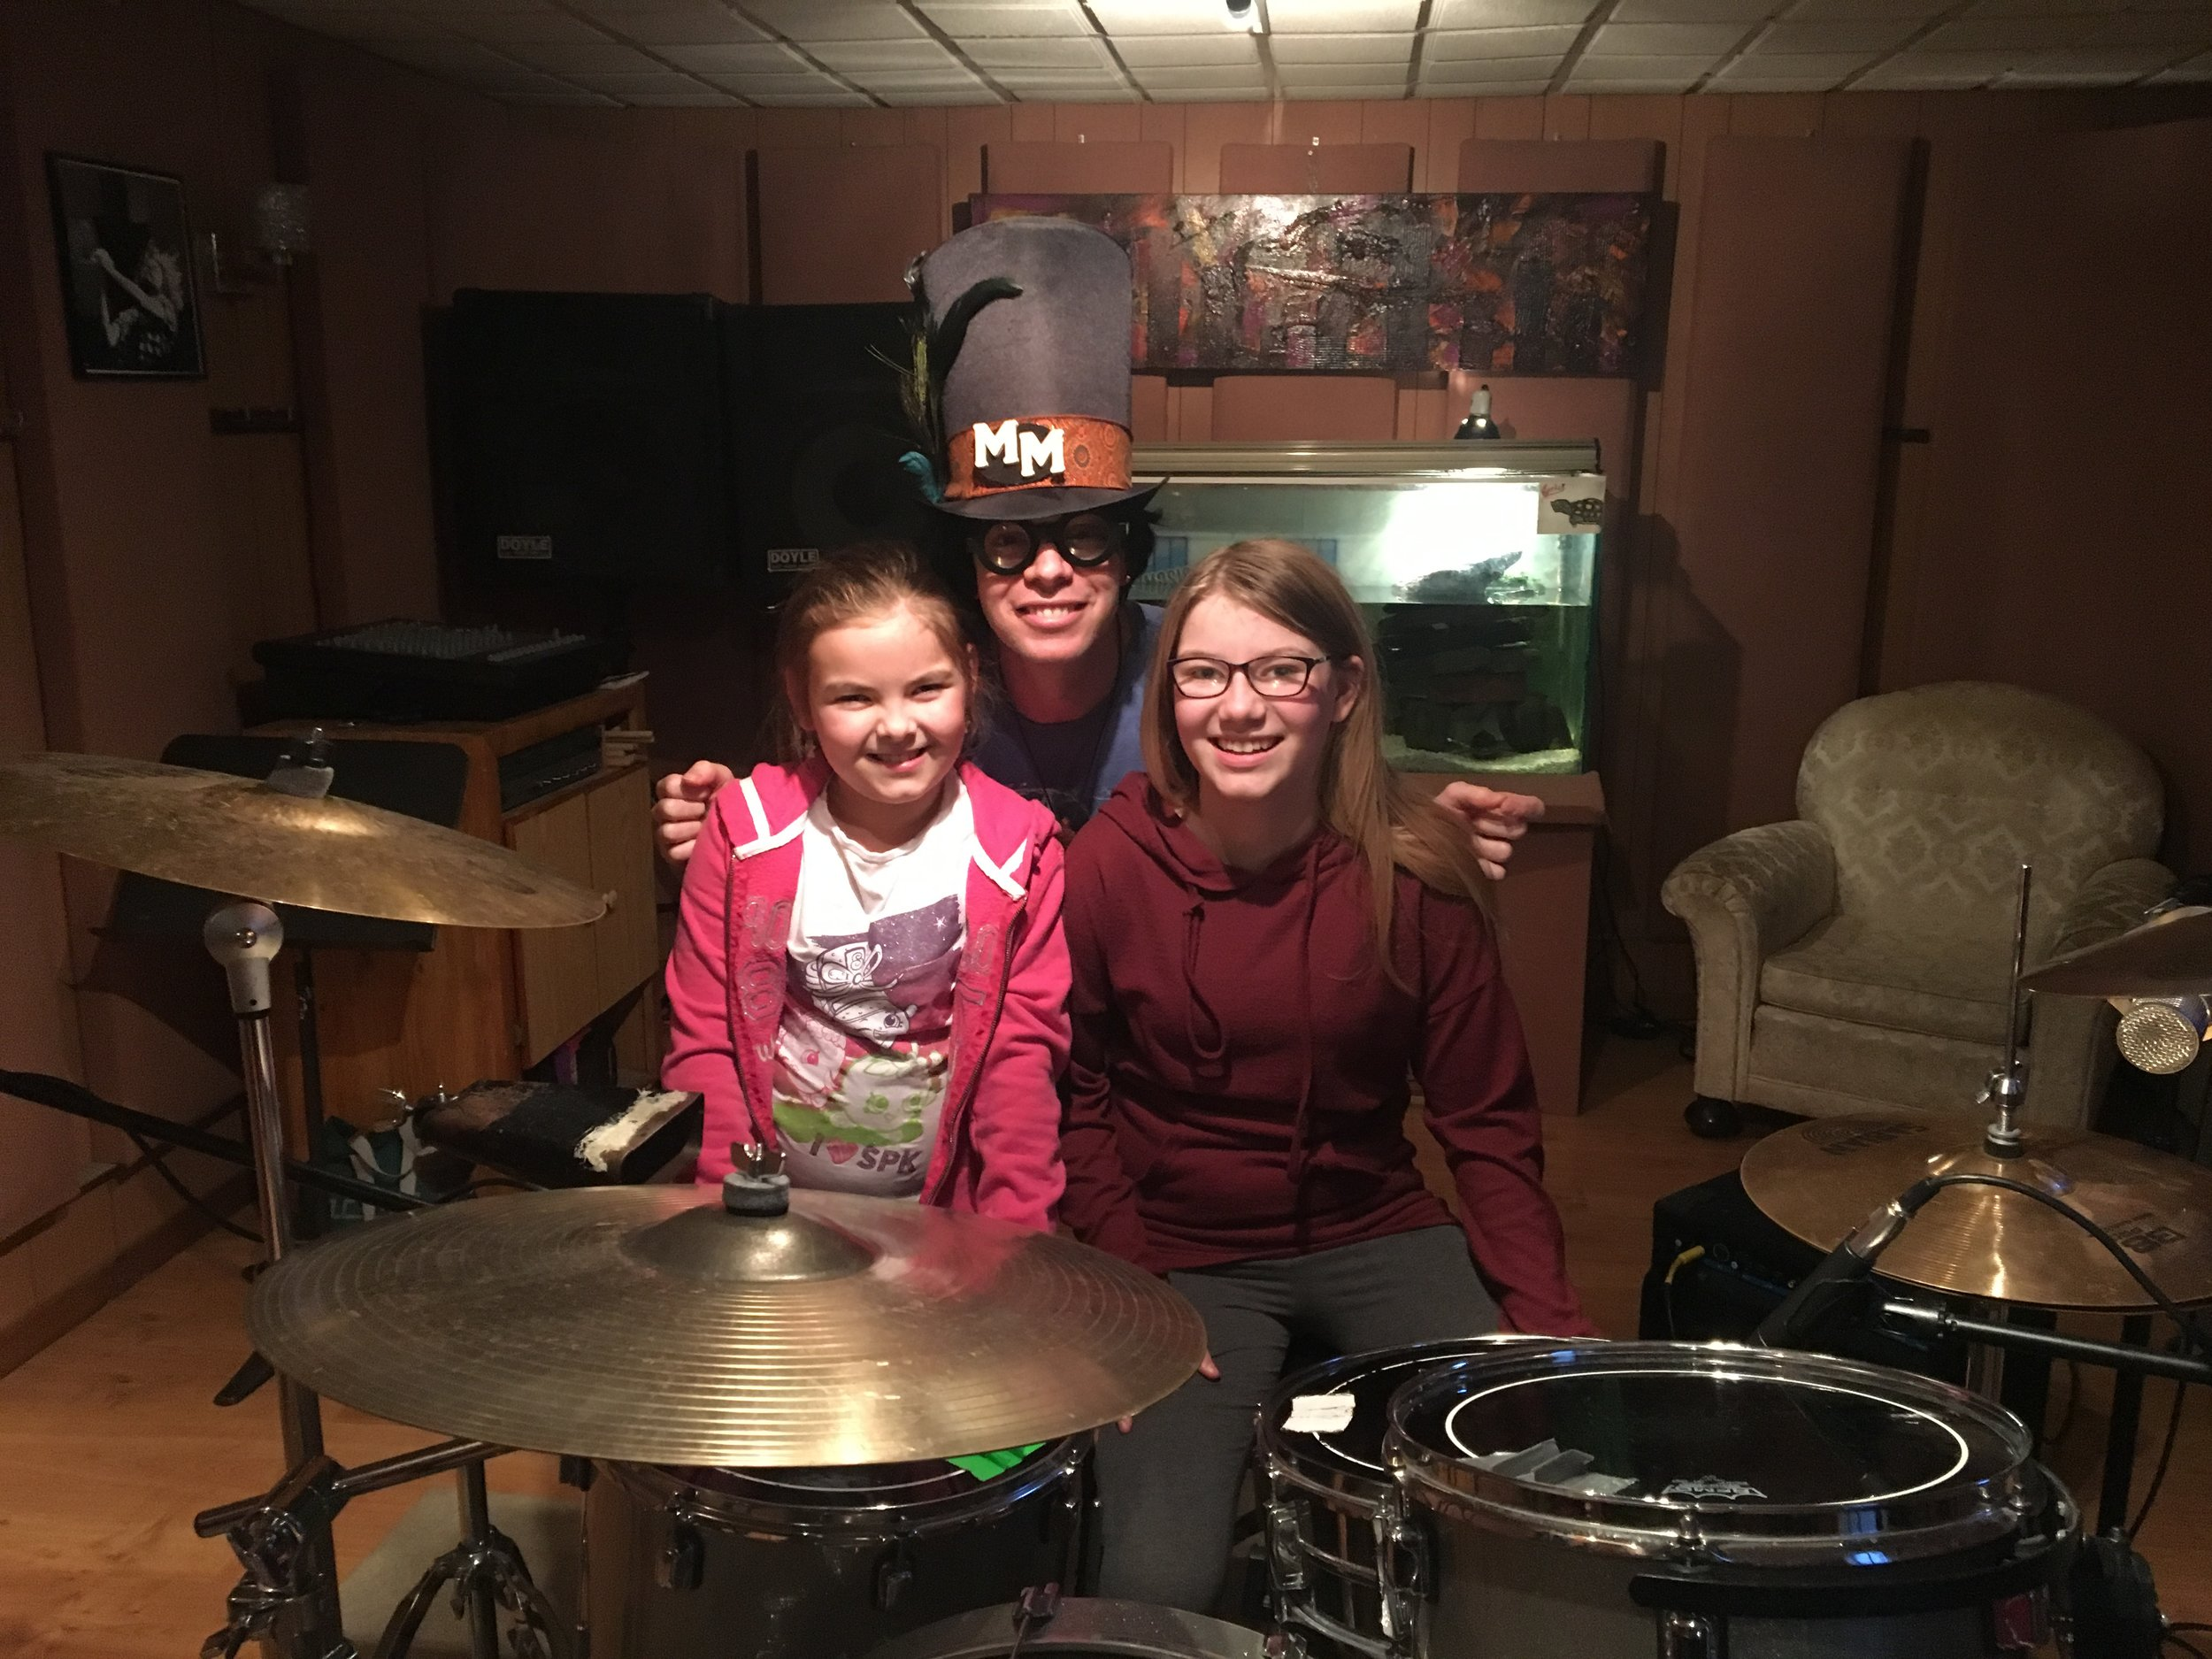 Rachel and Mckenna with Marky Monday at Pezmosis Music Productions.